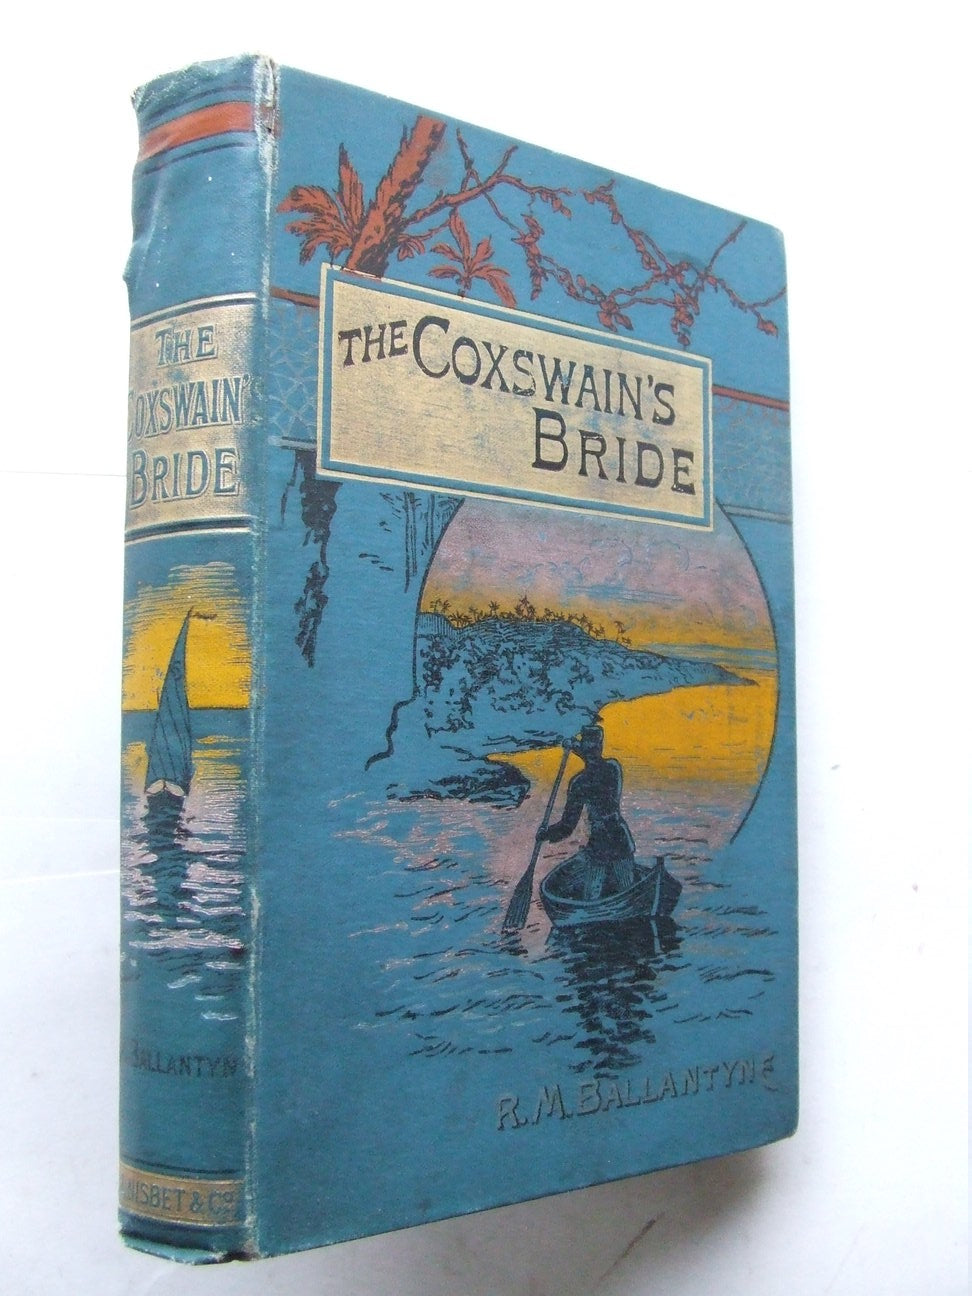 The Coxswain's Bride or the Rising Tide, a tale of the sea